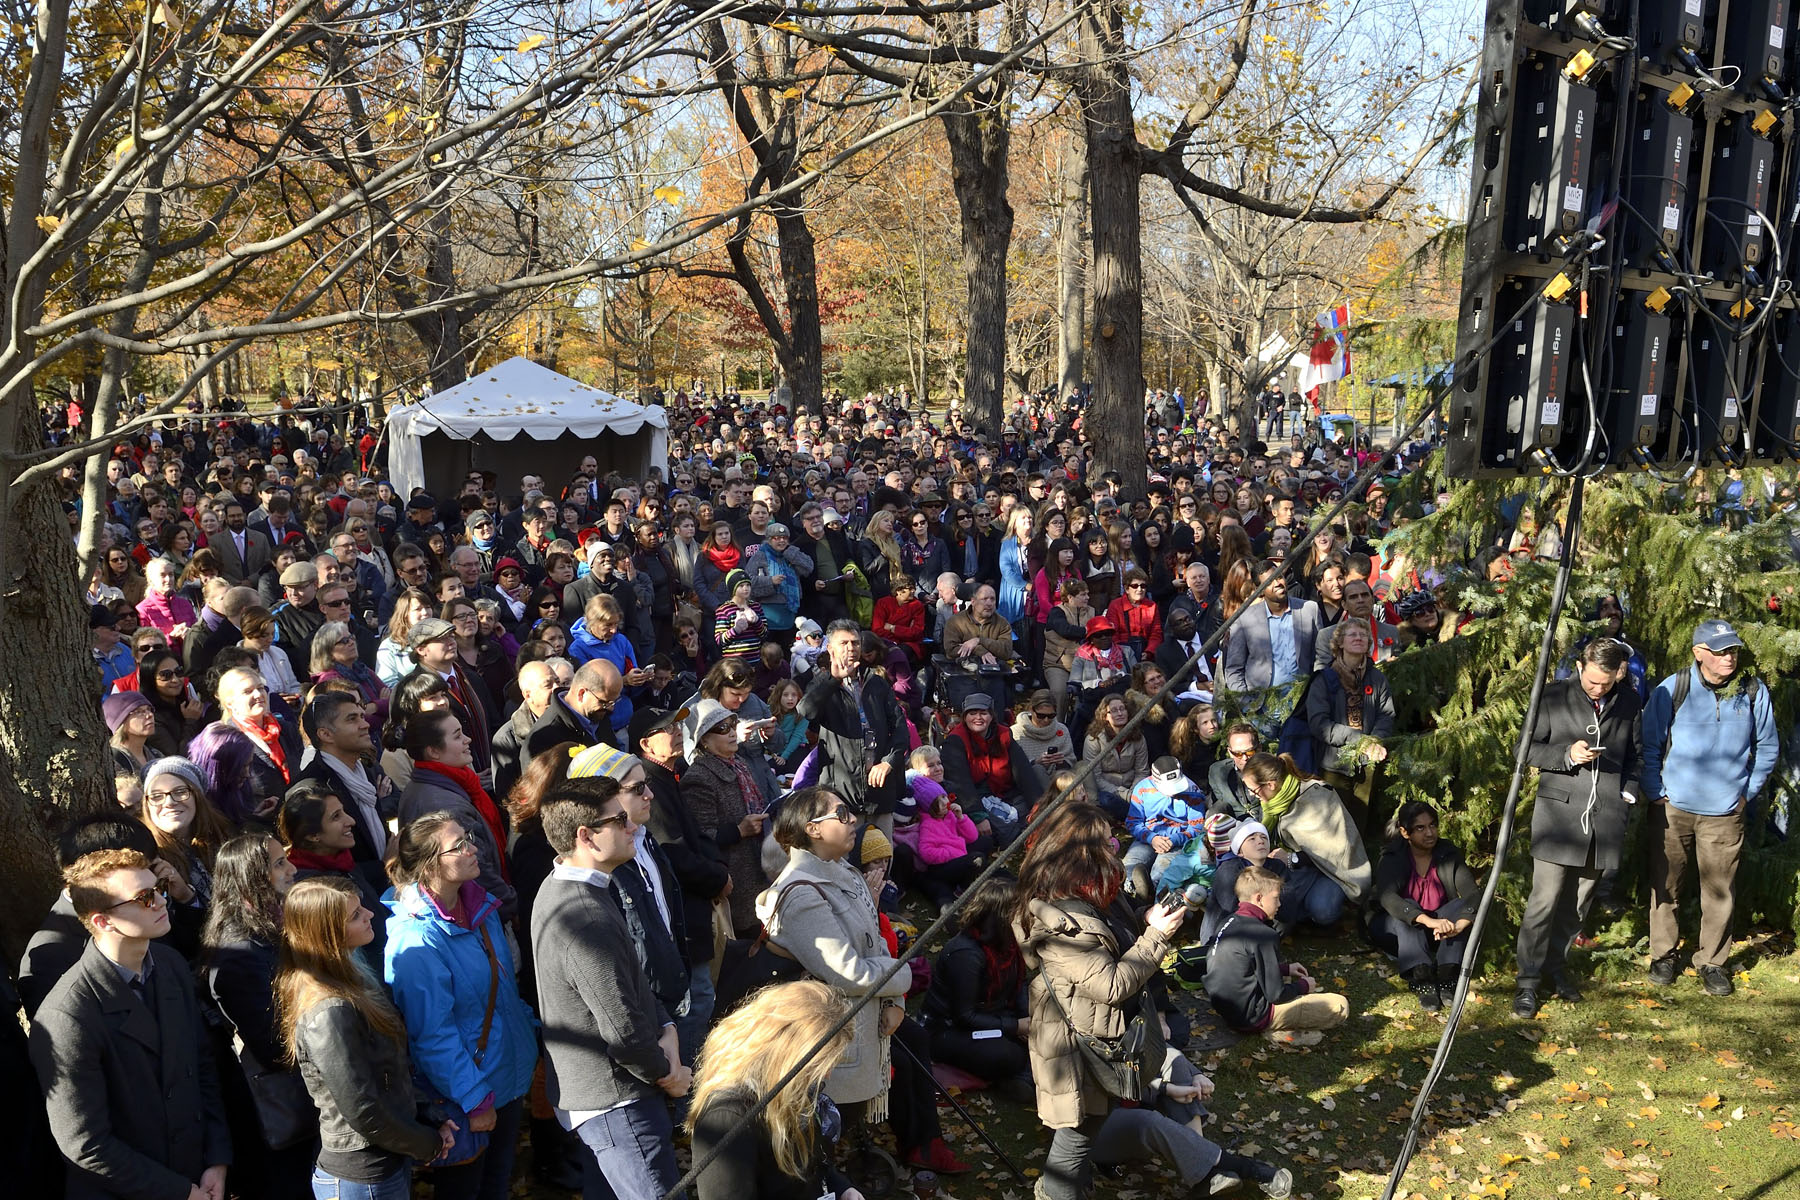 More than 3,500 members of the public witnessed the swearing-in ceremony on the grounds of Rideau Hall.